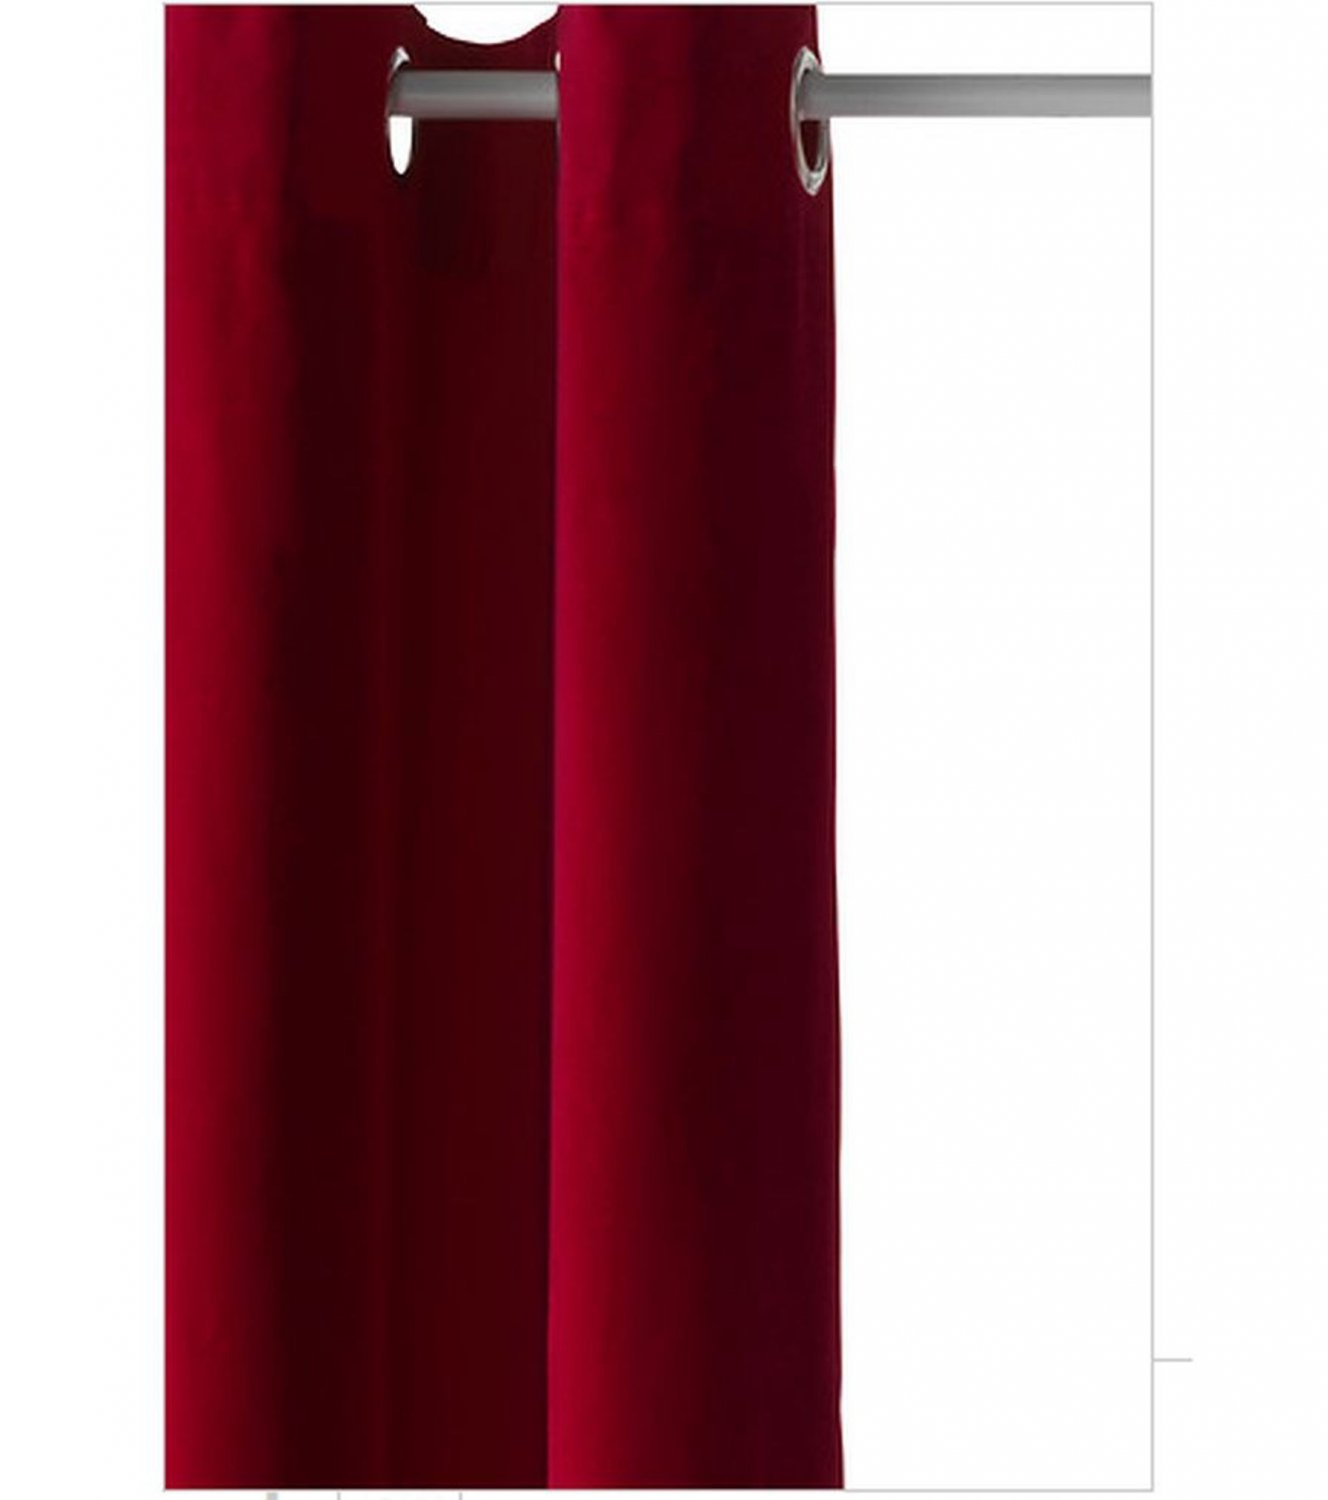 IKEA SANELA CURTAINS Drapes 2 Panels RED VELVET 98 Grommets